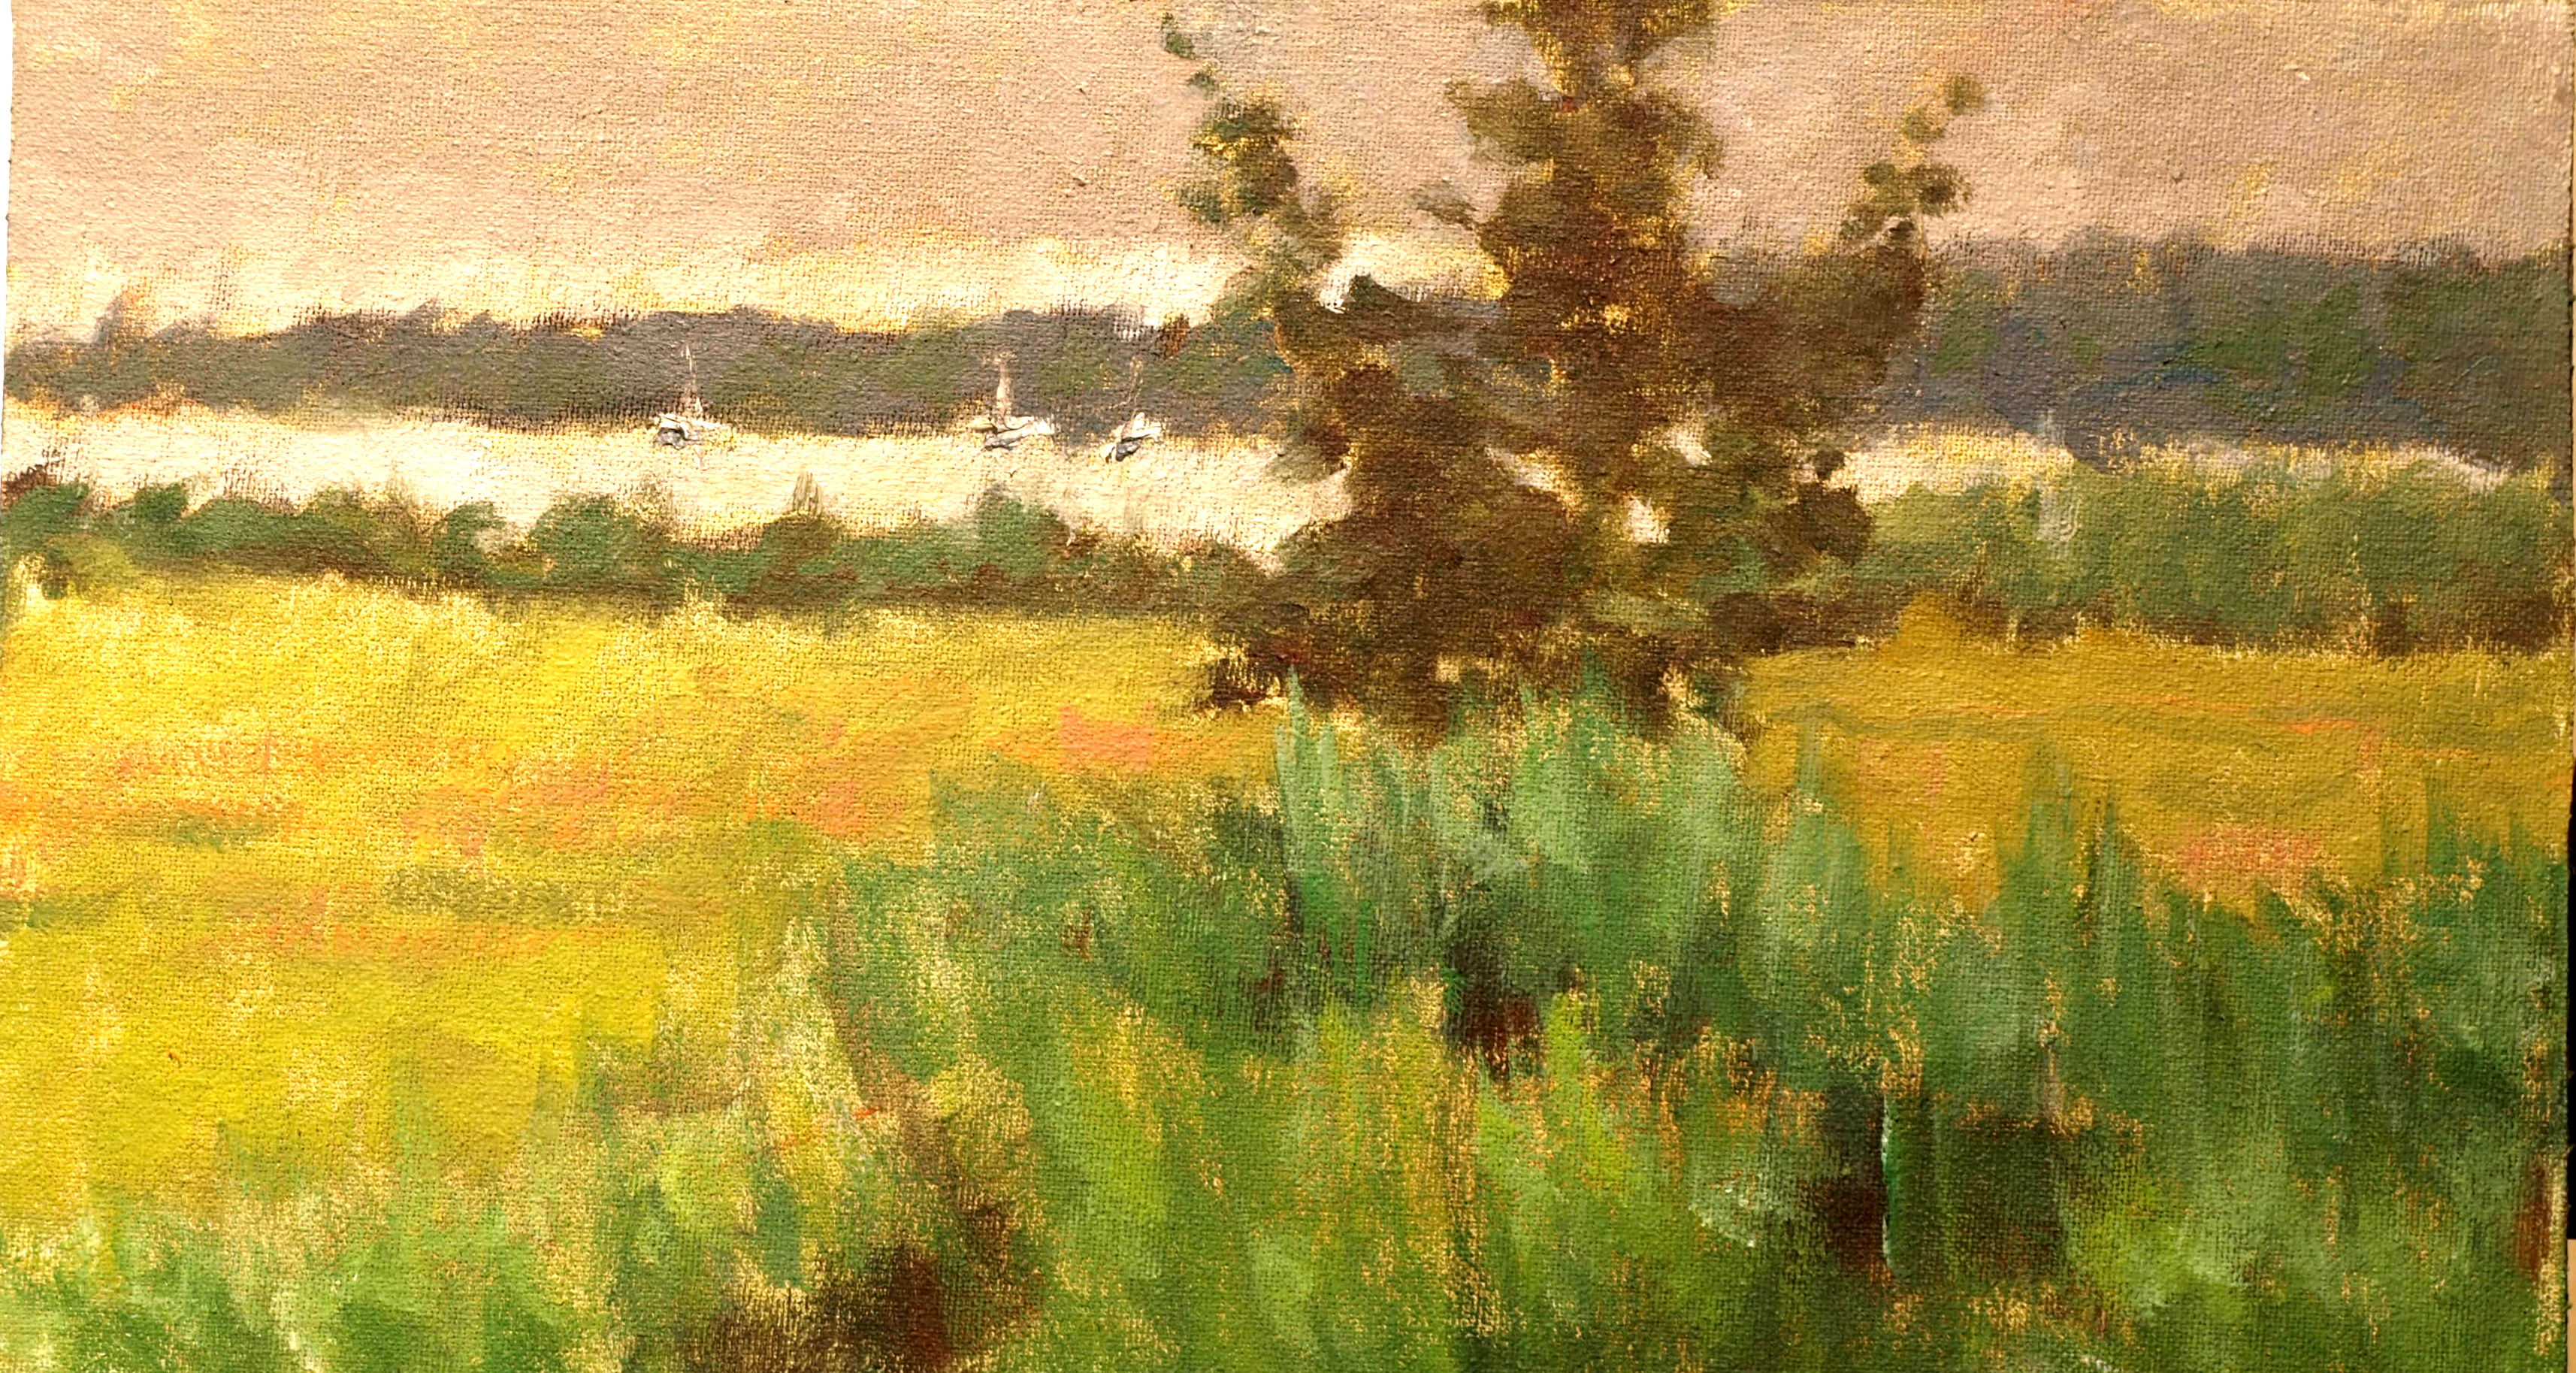 Masons Island Marsh in Summer, Oil on Canvas on Panel, 8 x 14 Inches, by Richard Stalter, $220